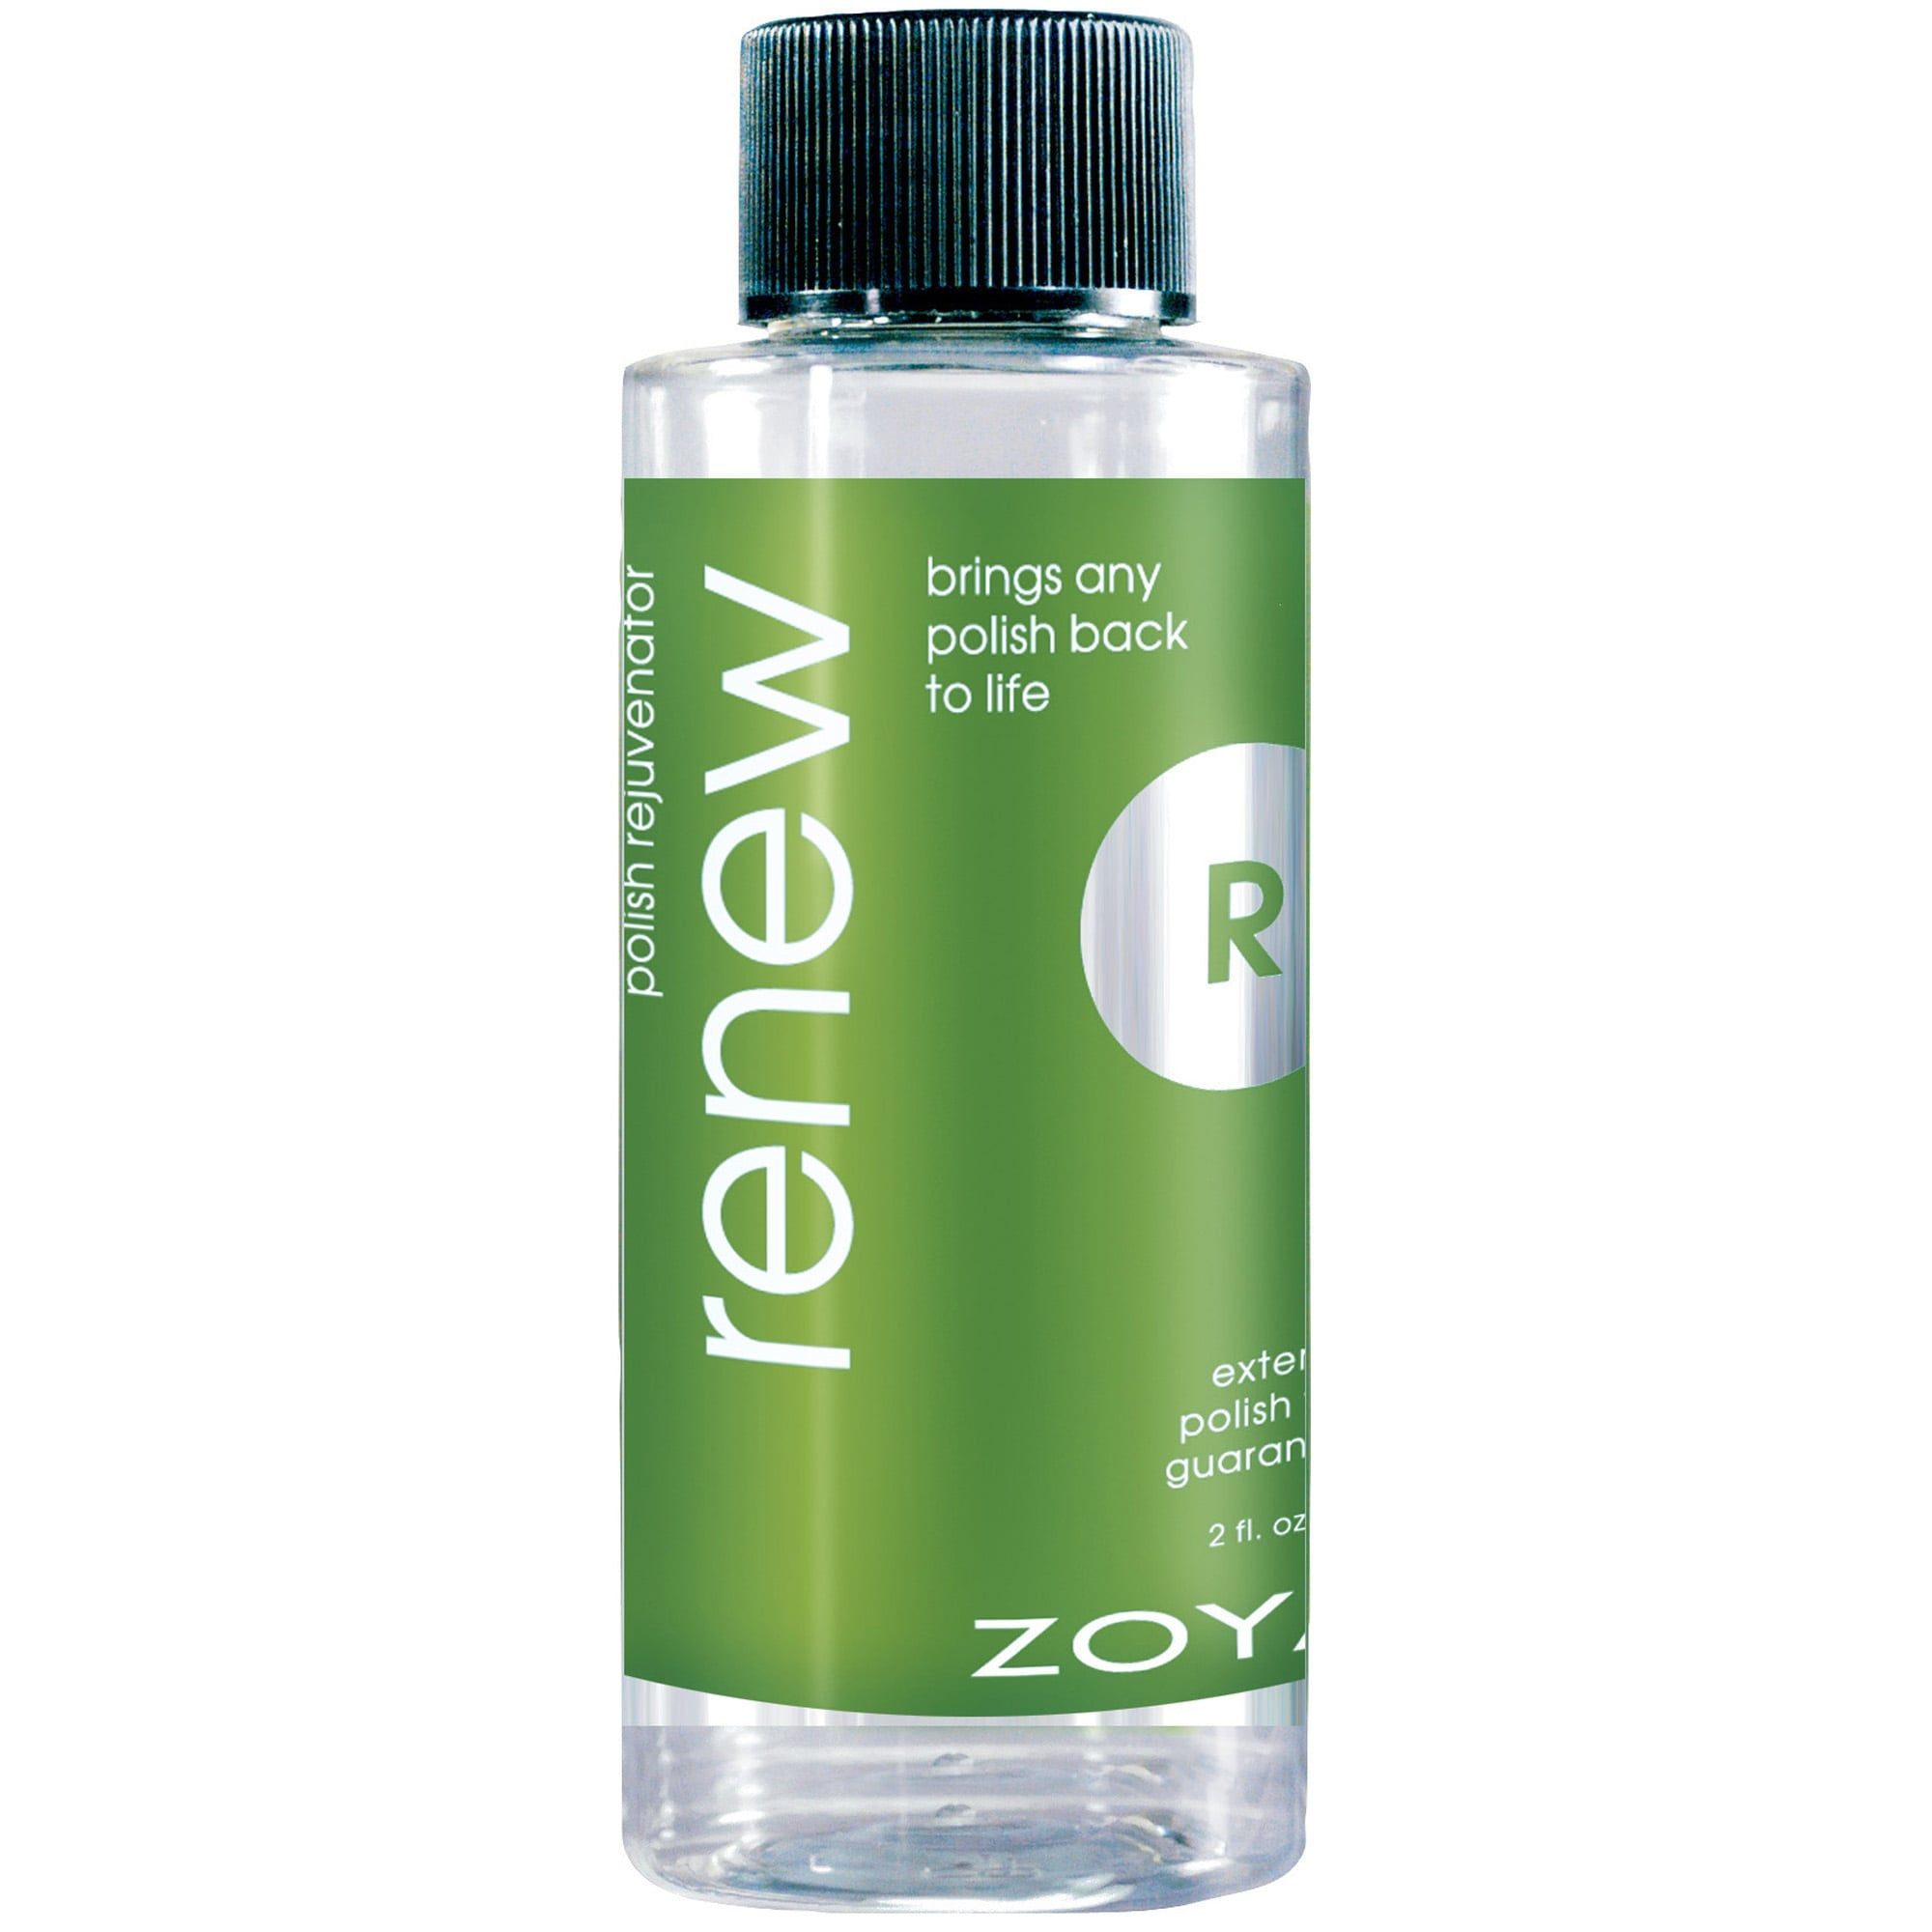 zoya renew polish rejuvenator 60ml